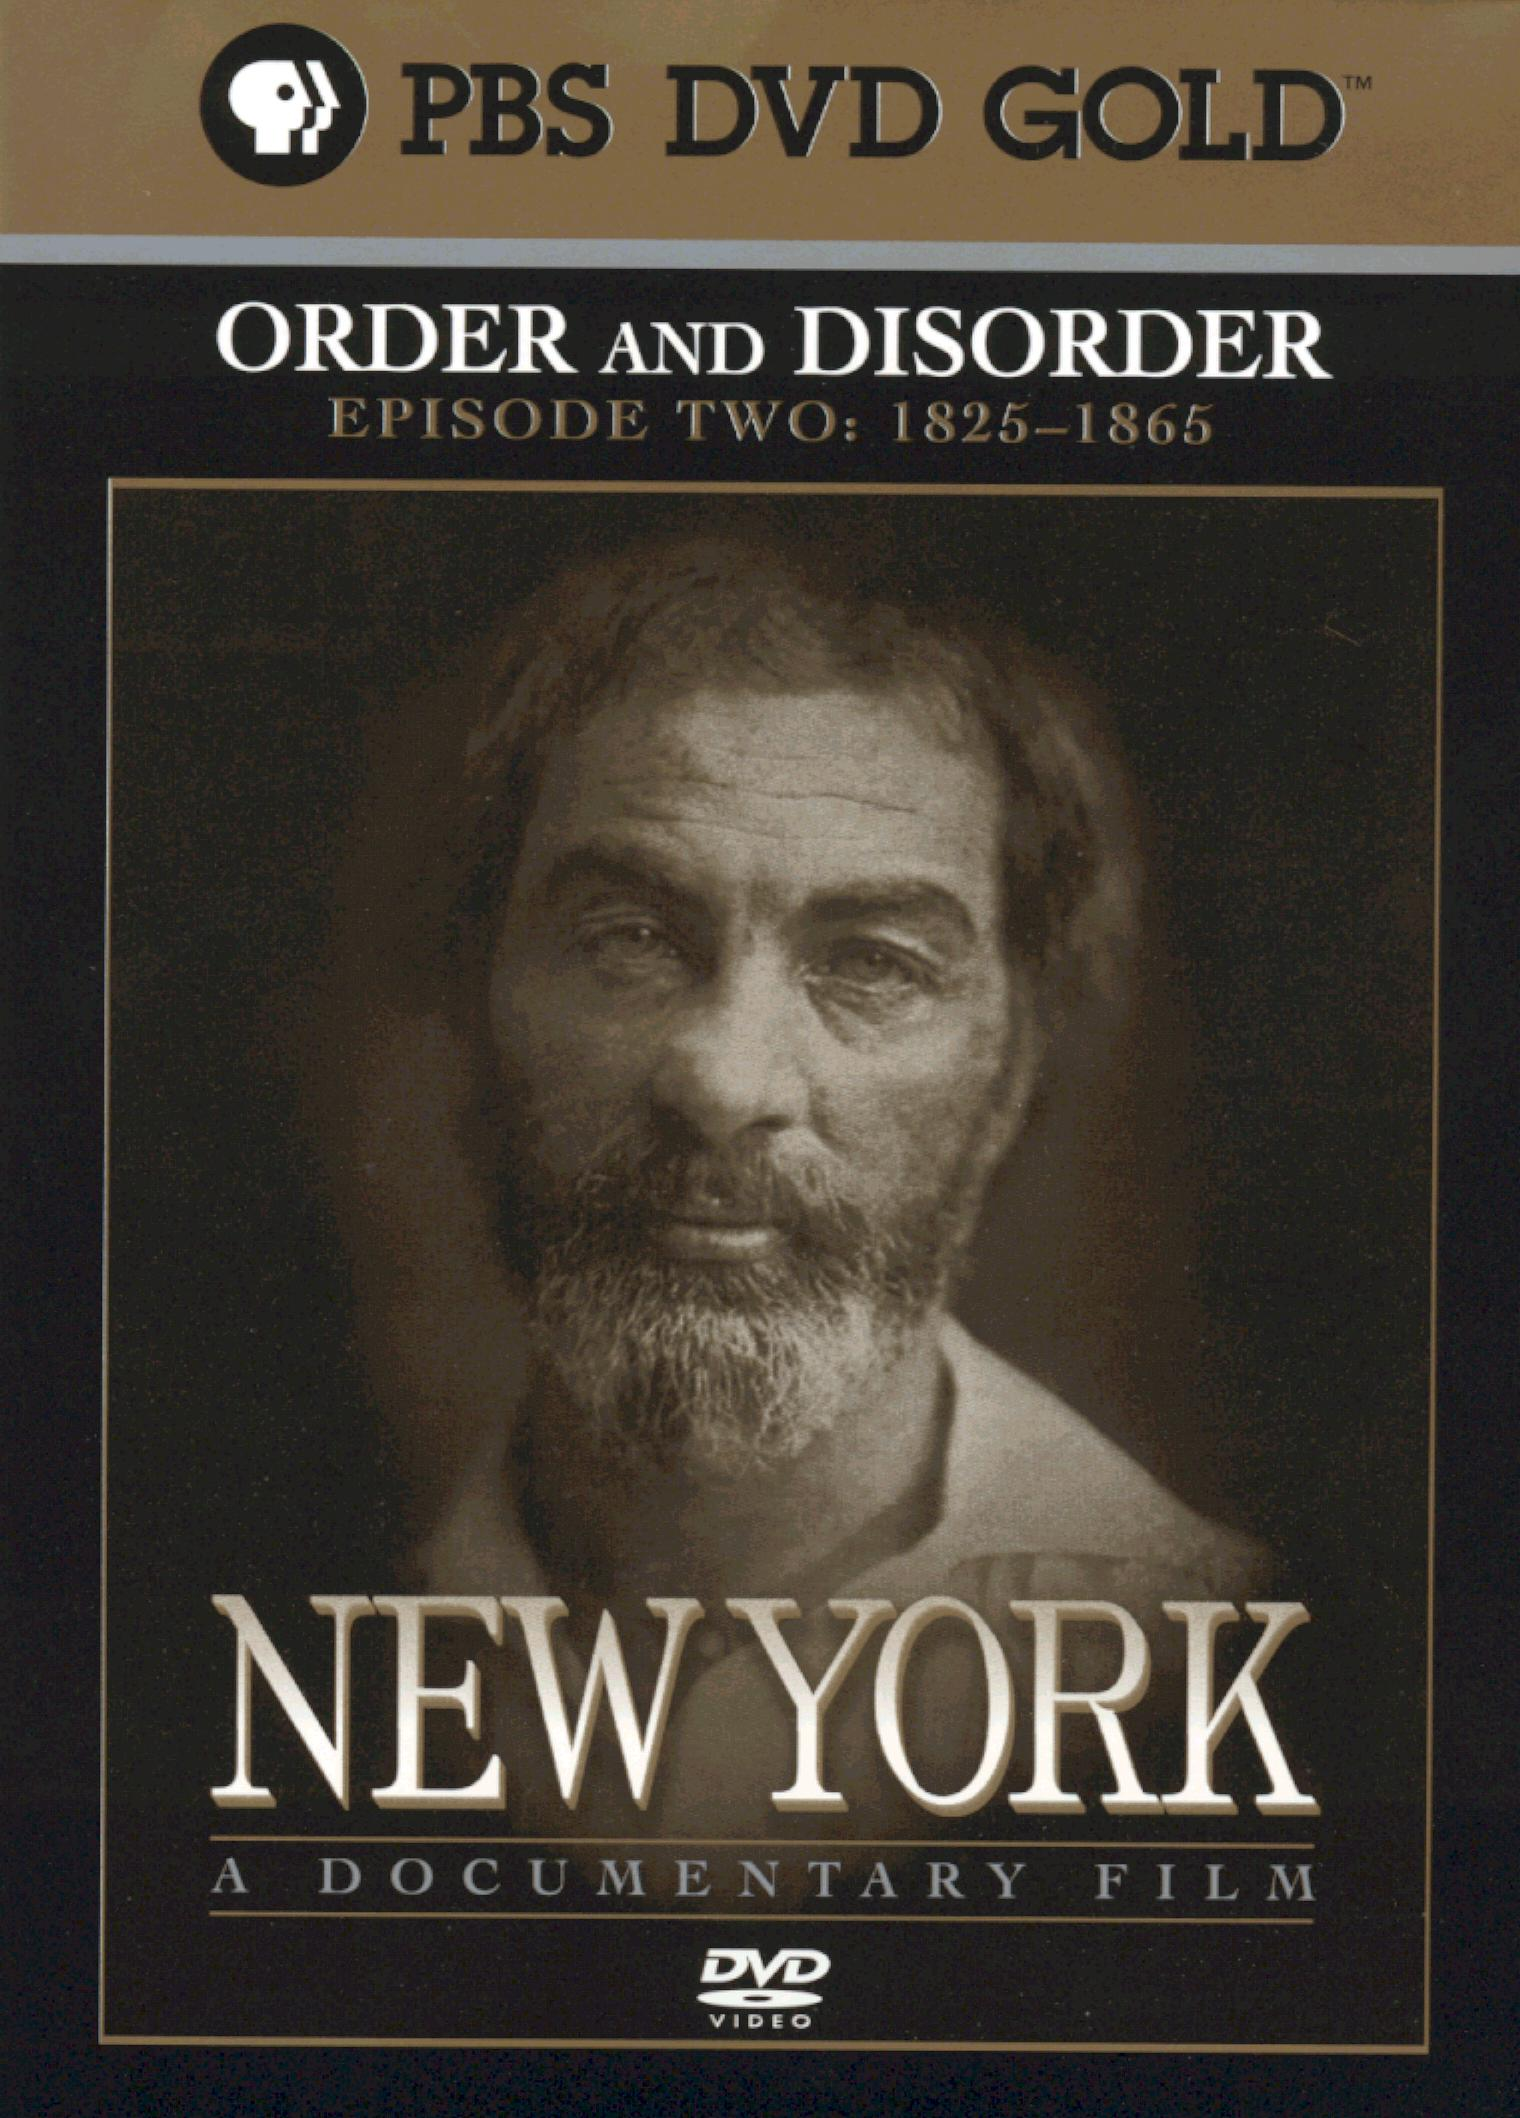 order and disorder in new york You are watching new york: order and disorder (1825-1865) movie ric burns (brother of the famed documentarian ken burns) presents an exhaustive history of new york city from the settling of the area by the dutch to the attack by terrorists nearly 400 years later told in a sentimental tone, burns.